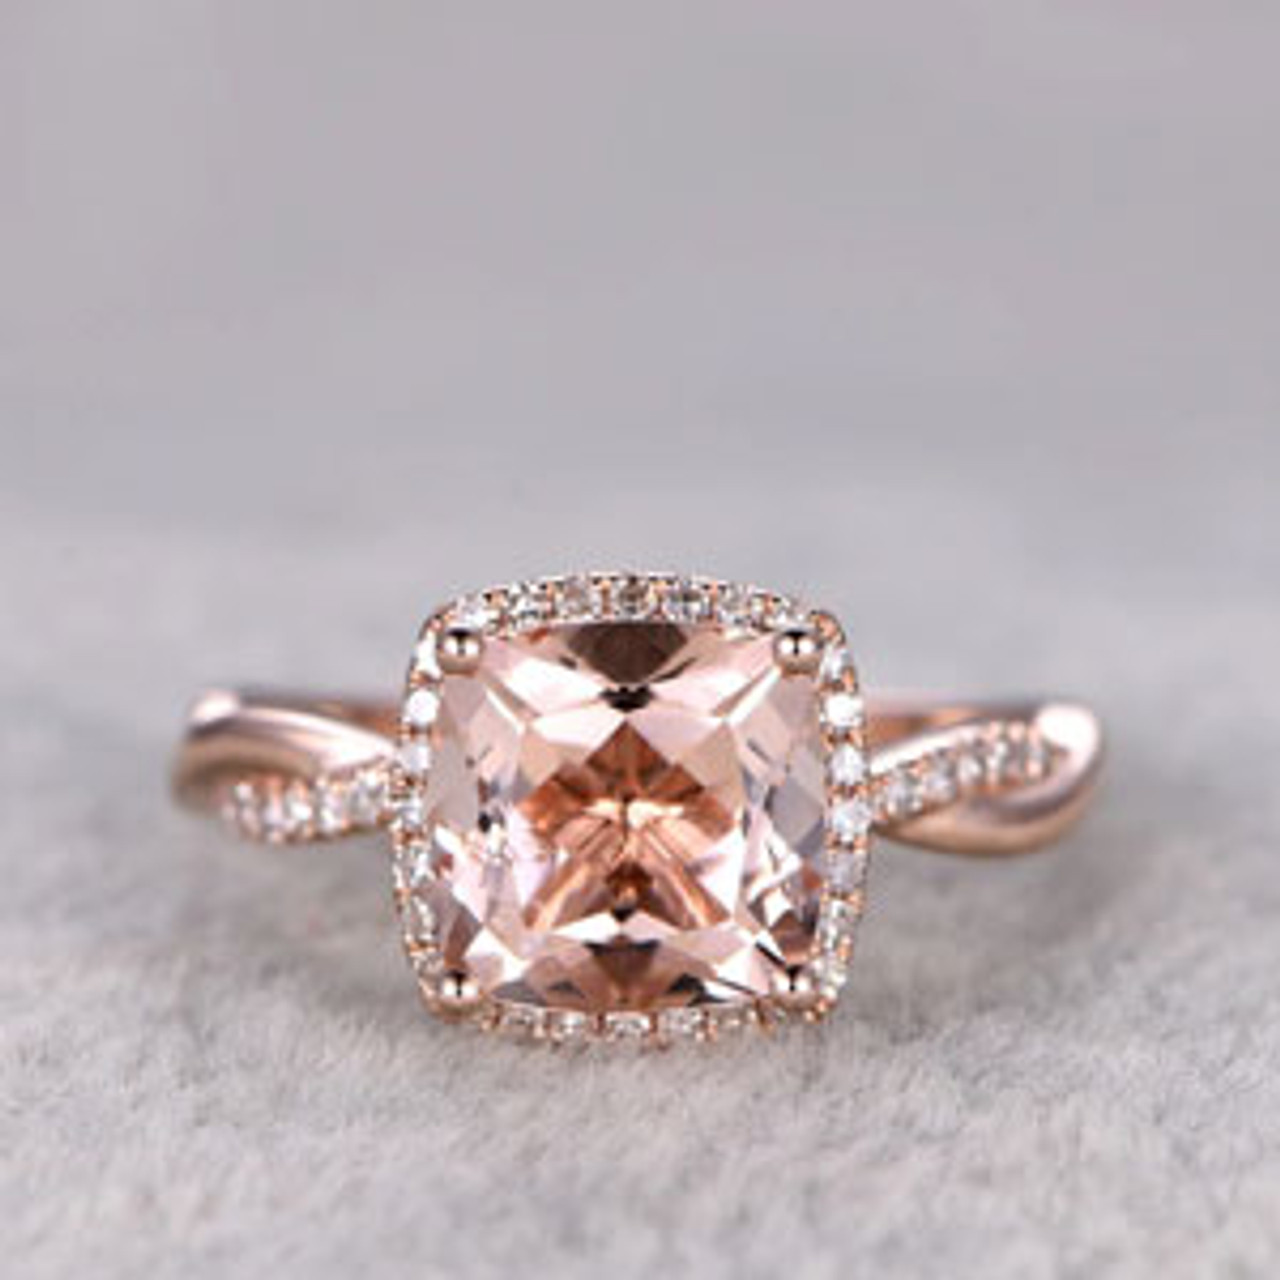 2 4 Carat Cushion Cut Morganite Engagement Ring Diamond Promise Ring 14k Rose Gold Infinity Twisted Halo Stacking Band